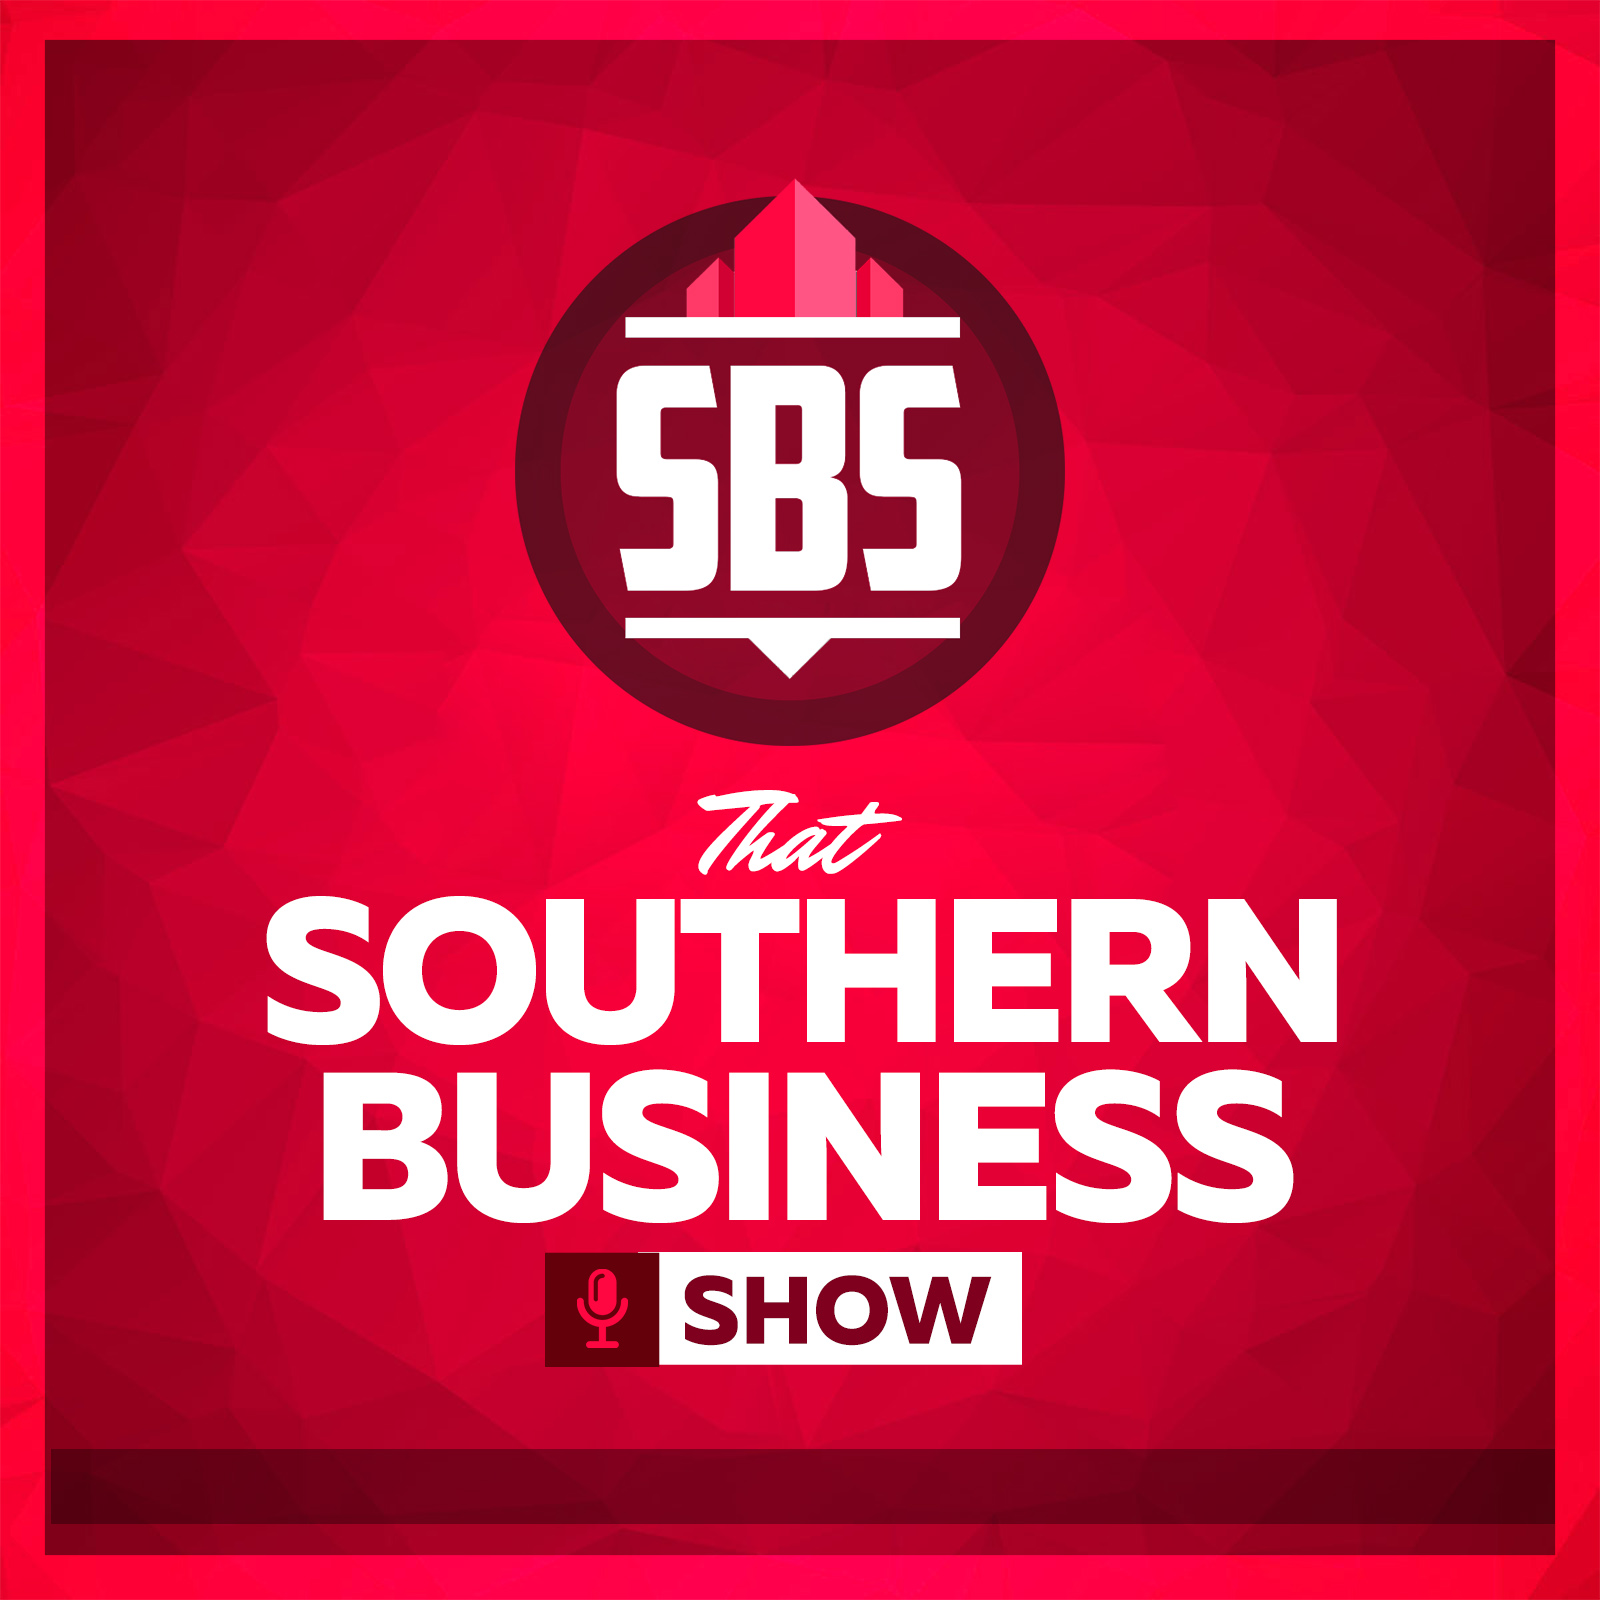 That Southern Business Show